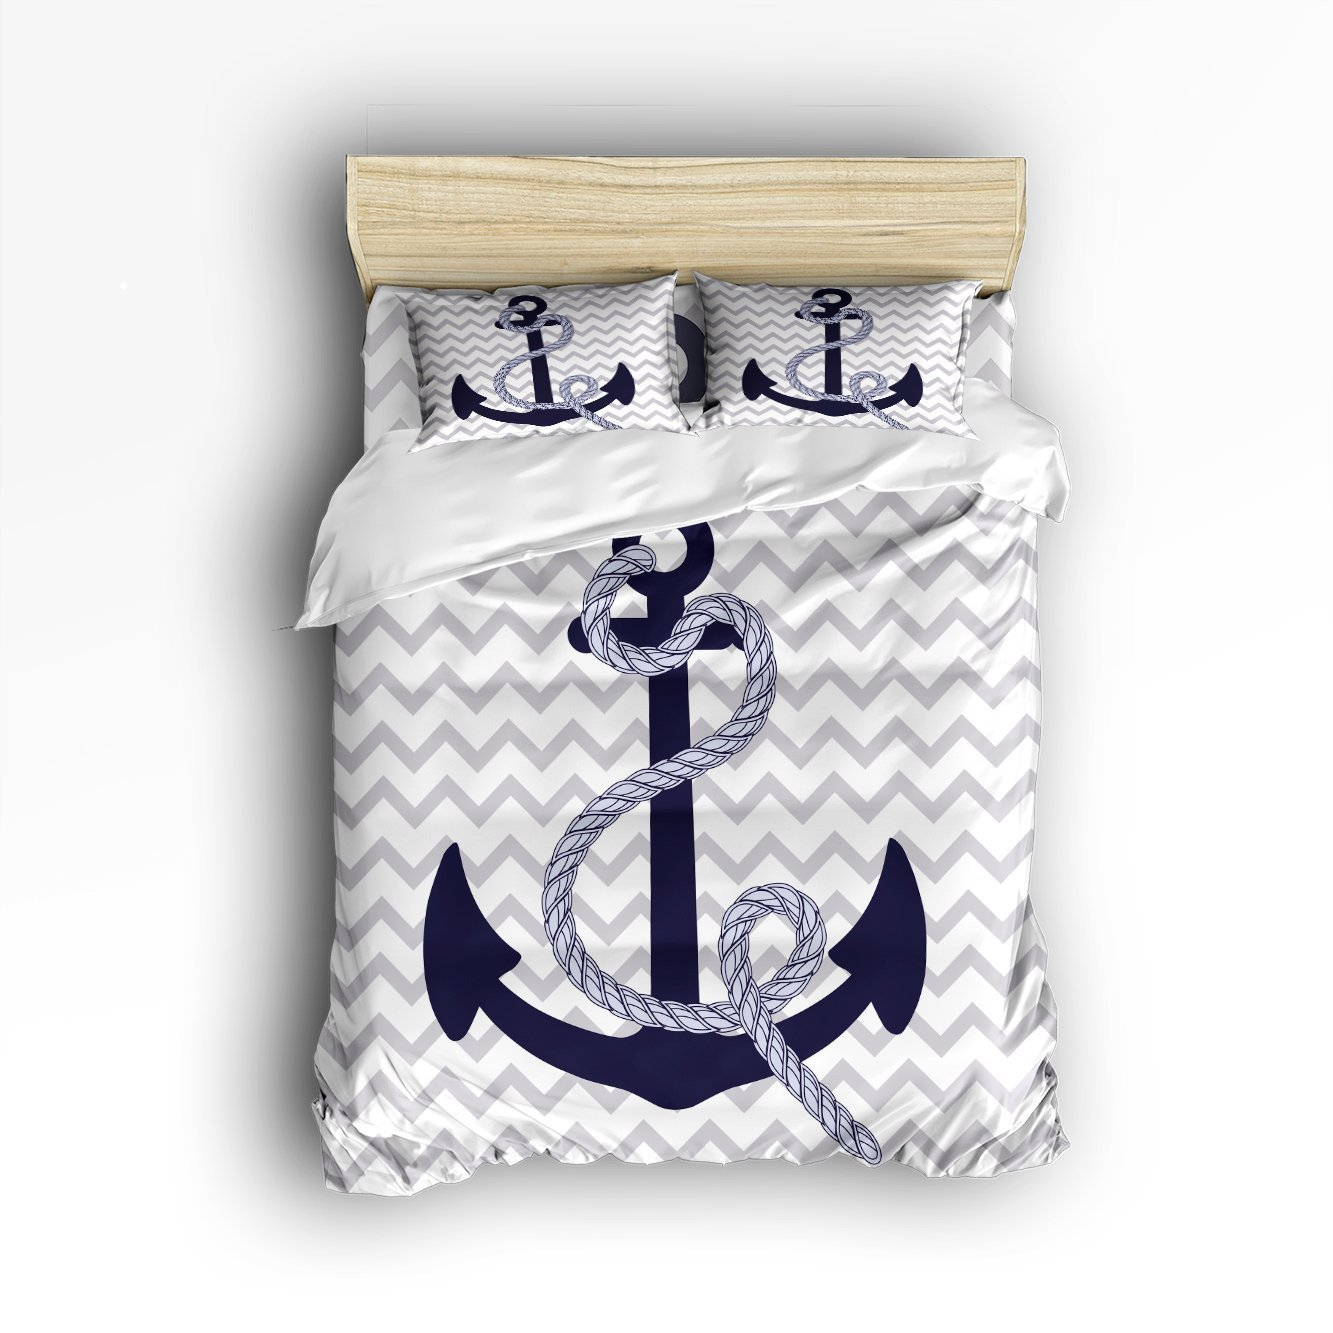 4 Piece Bed Sheets Set Navy Nautical Anchor With Grey White Zig Zag Chevron Pattern